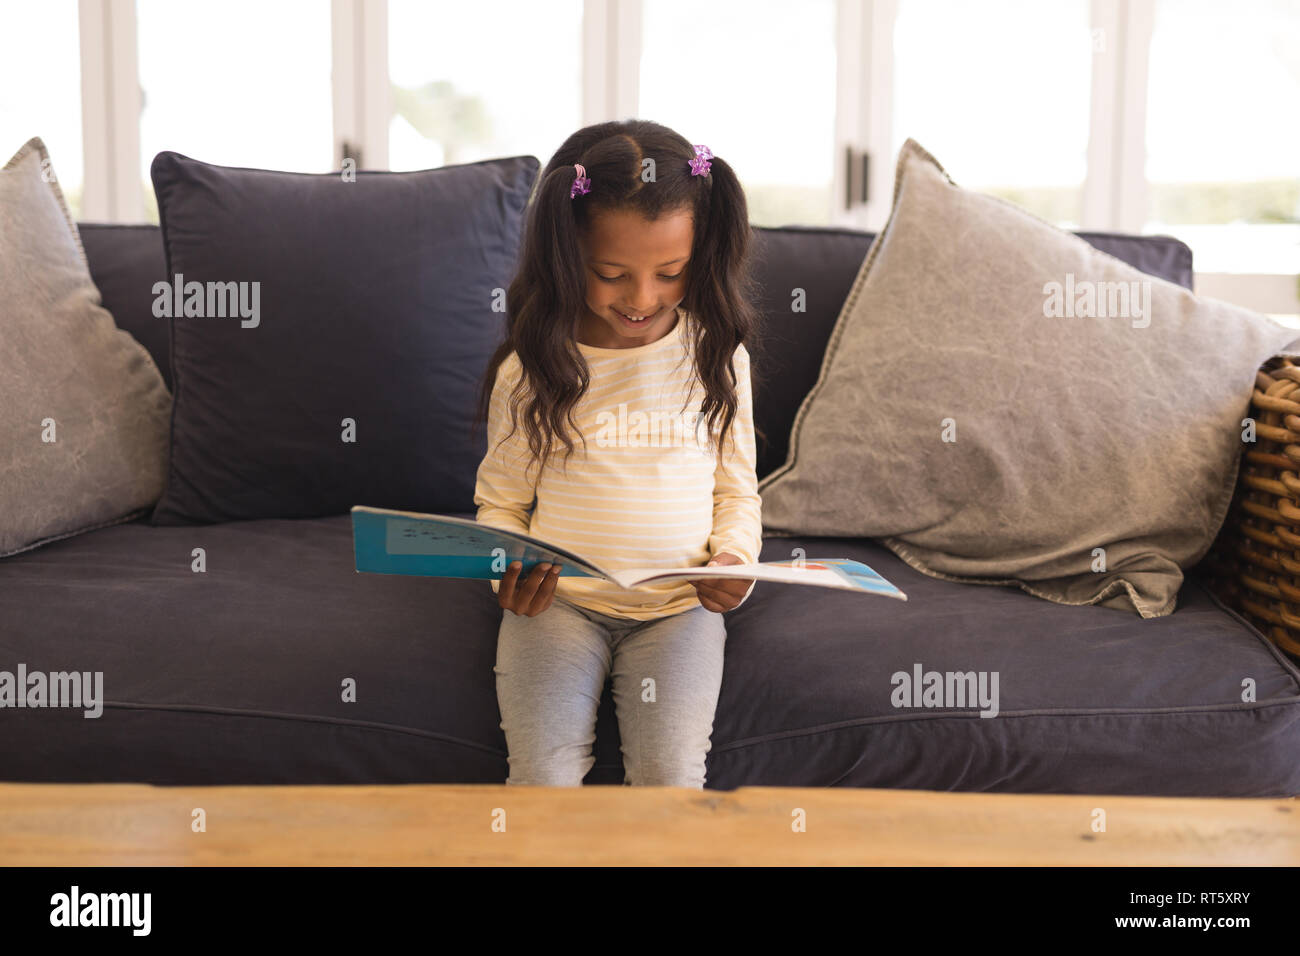 Girl reading a story book in living room - Stock Image